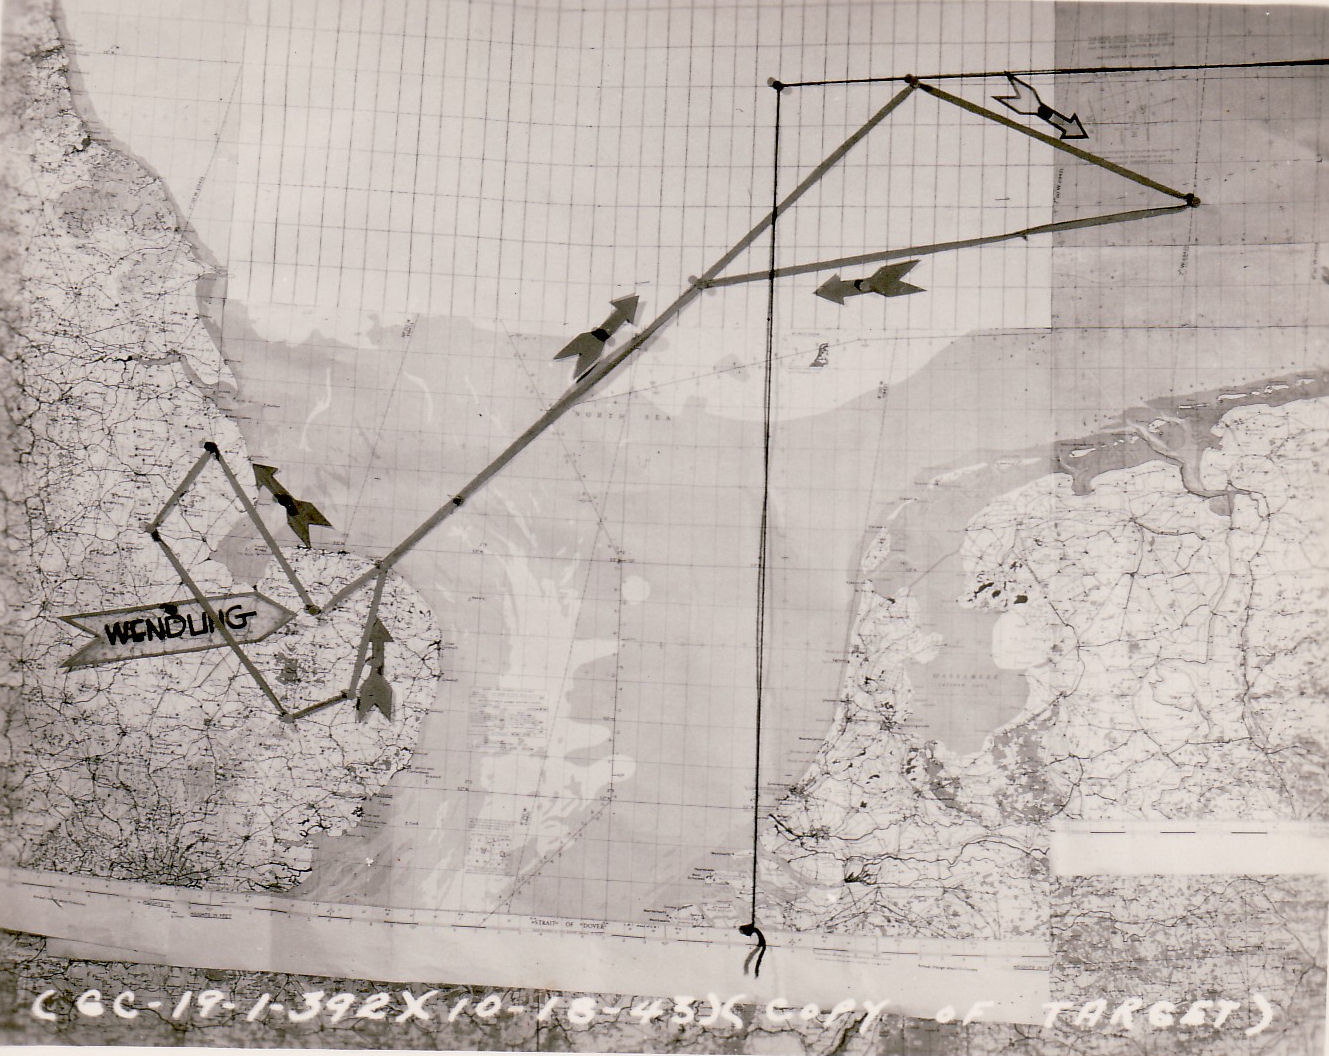 18Oct43 diversion mission route